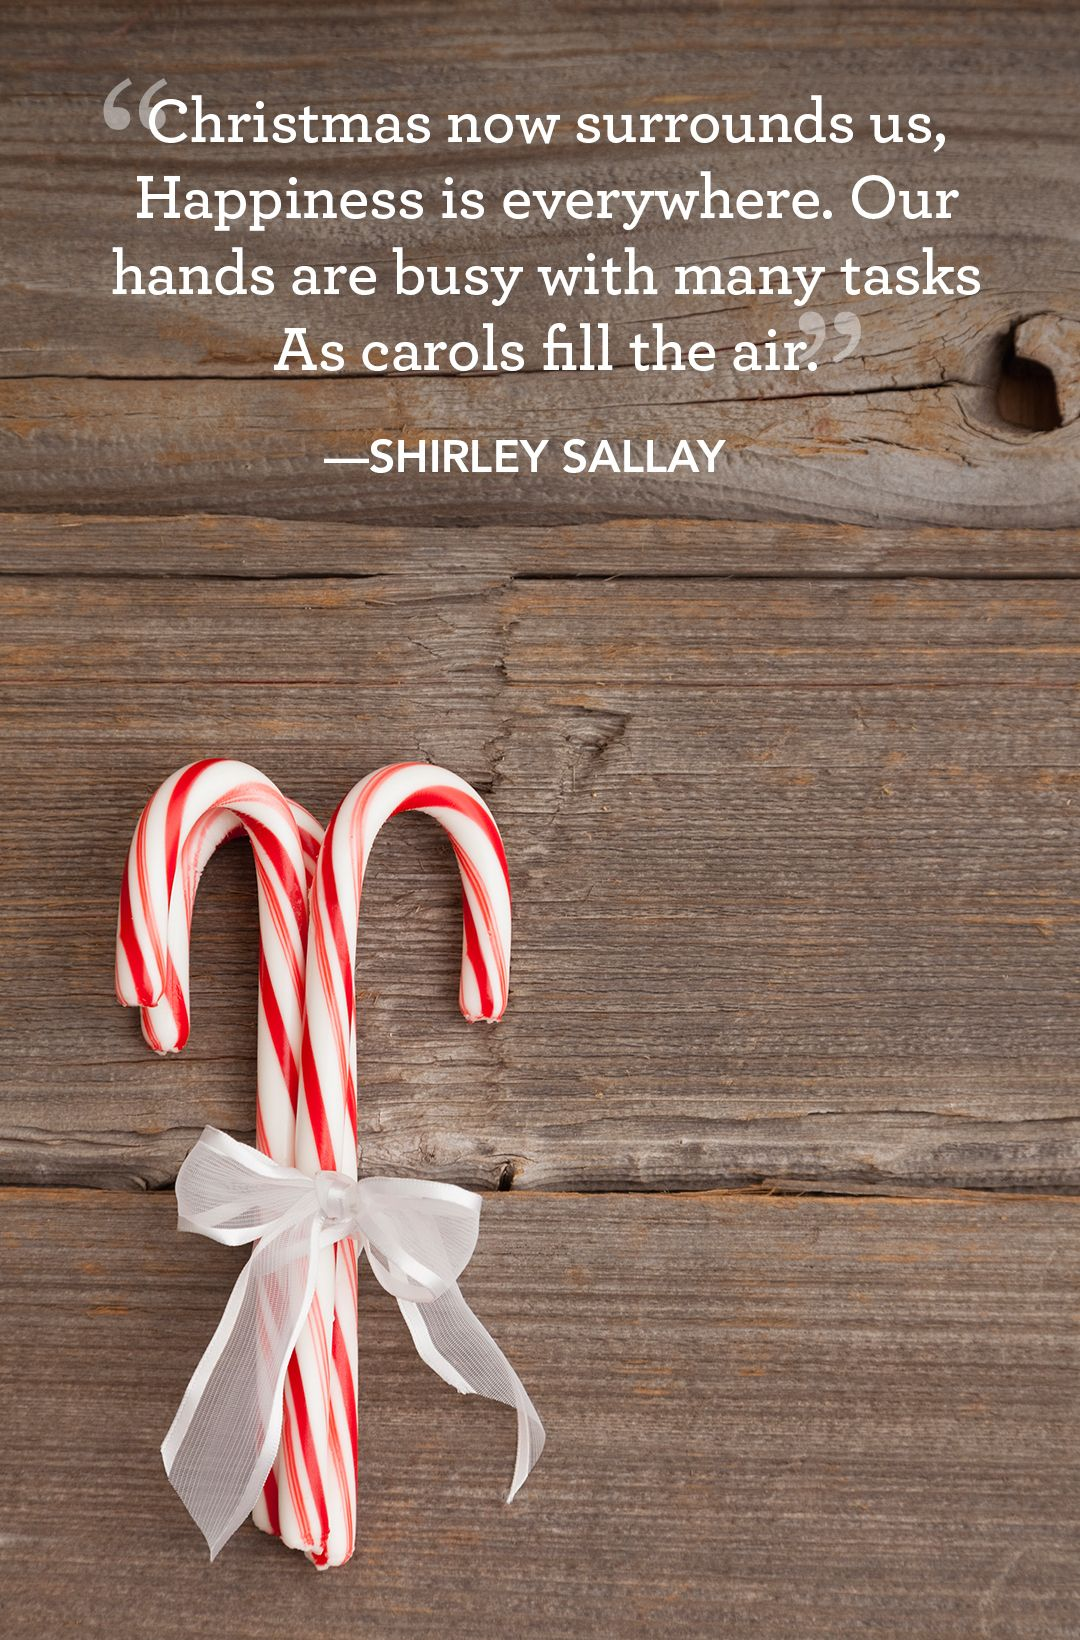 Quotes For Christmas 15 Merry Christmas Quotes  Inspirational Christmas Sayings And